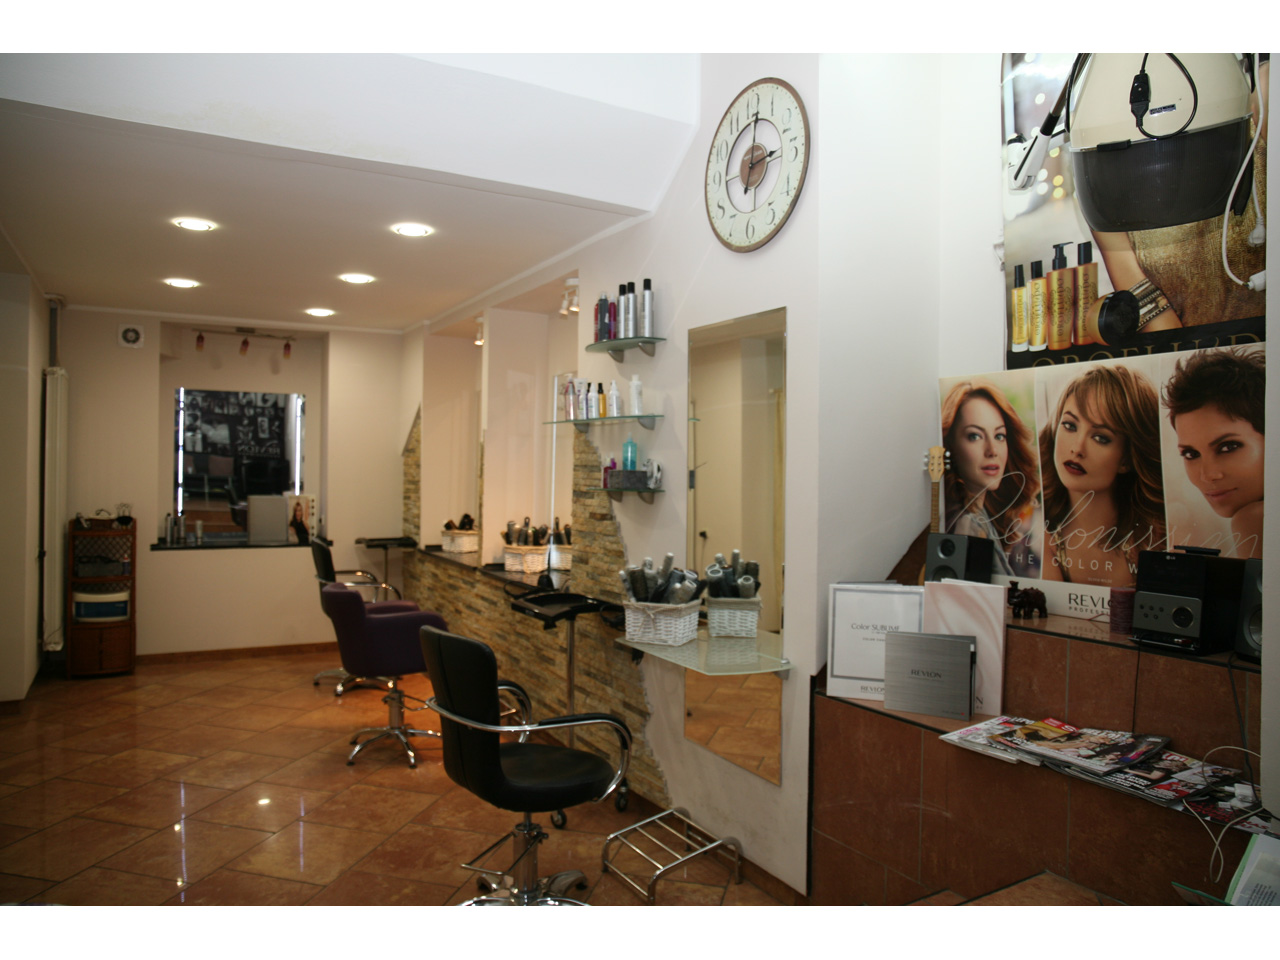 Hairdressing Salon Bubi T Cosmetic And Hairdressing Salon Hairdressers 13